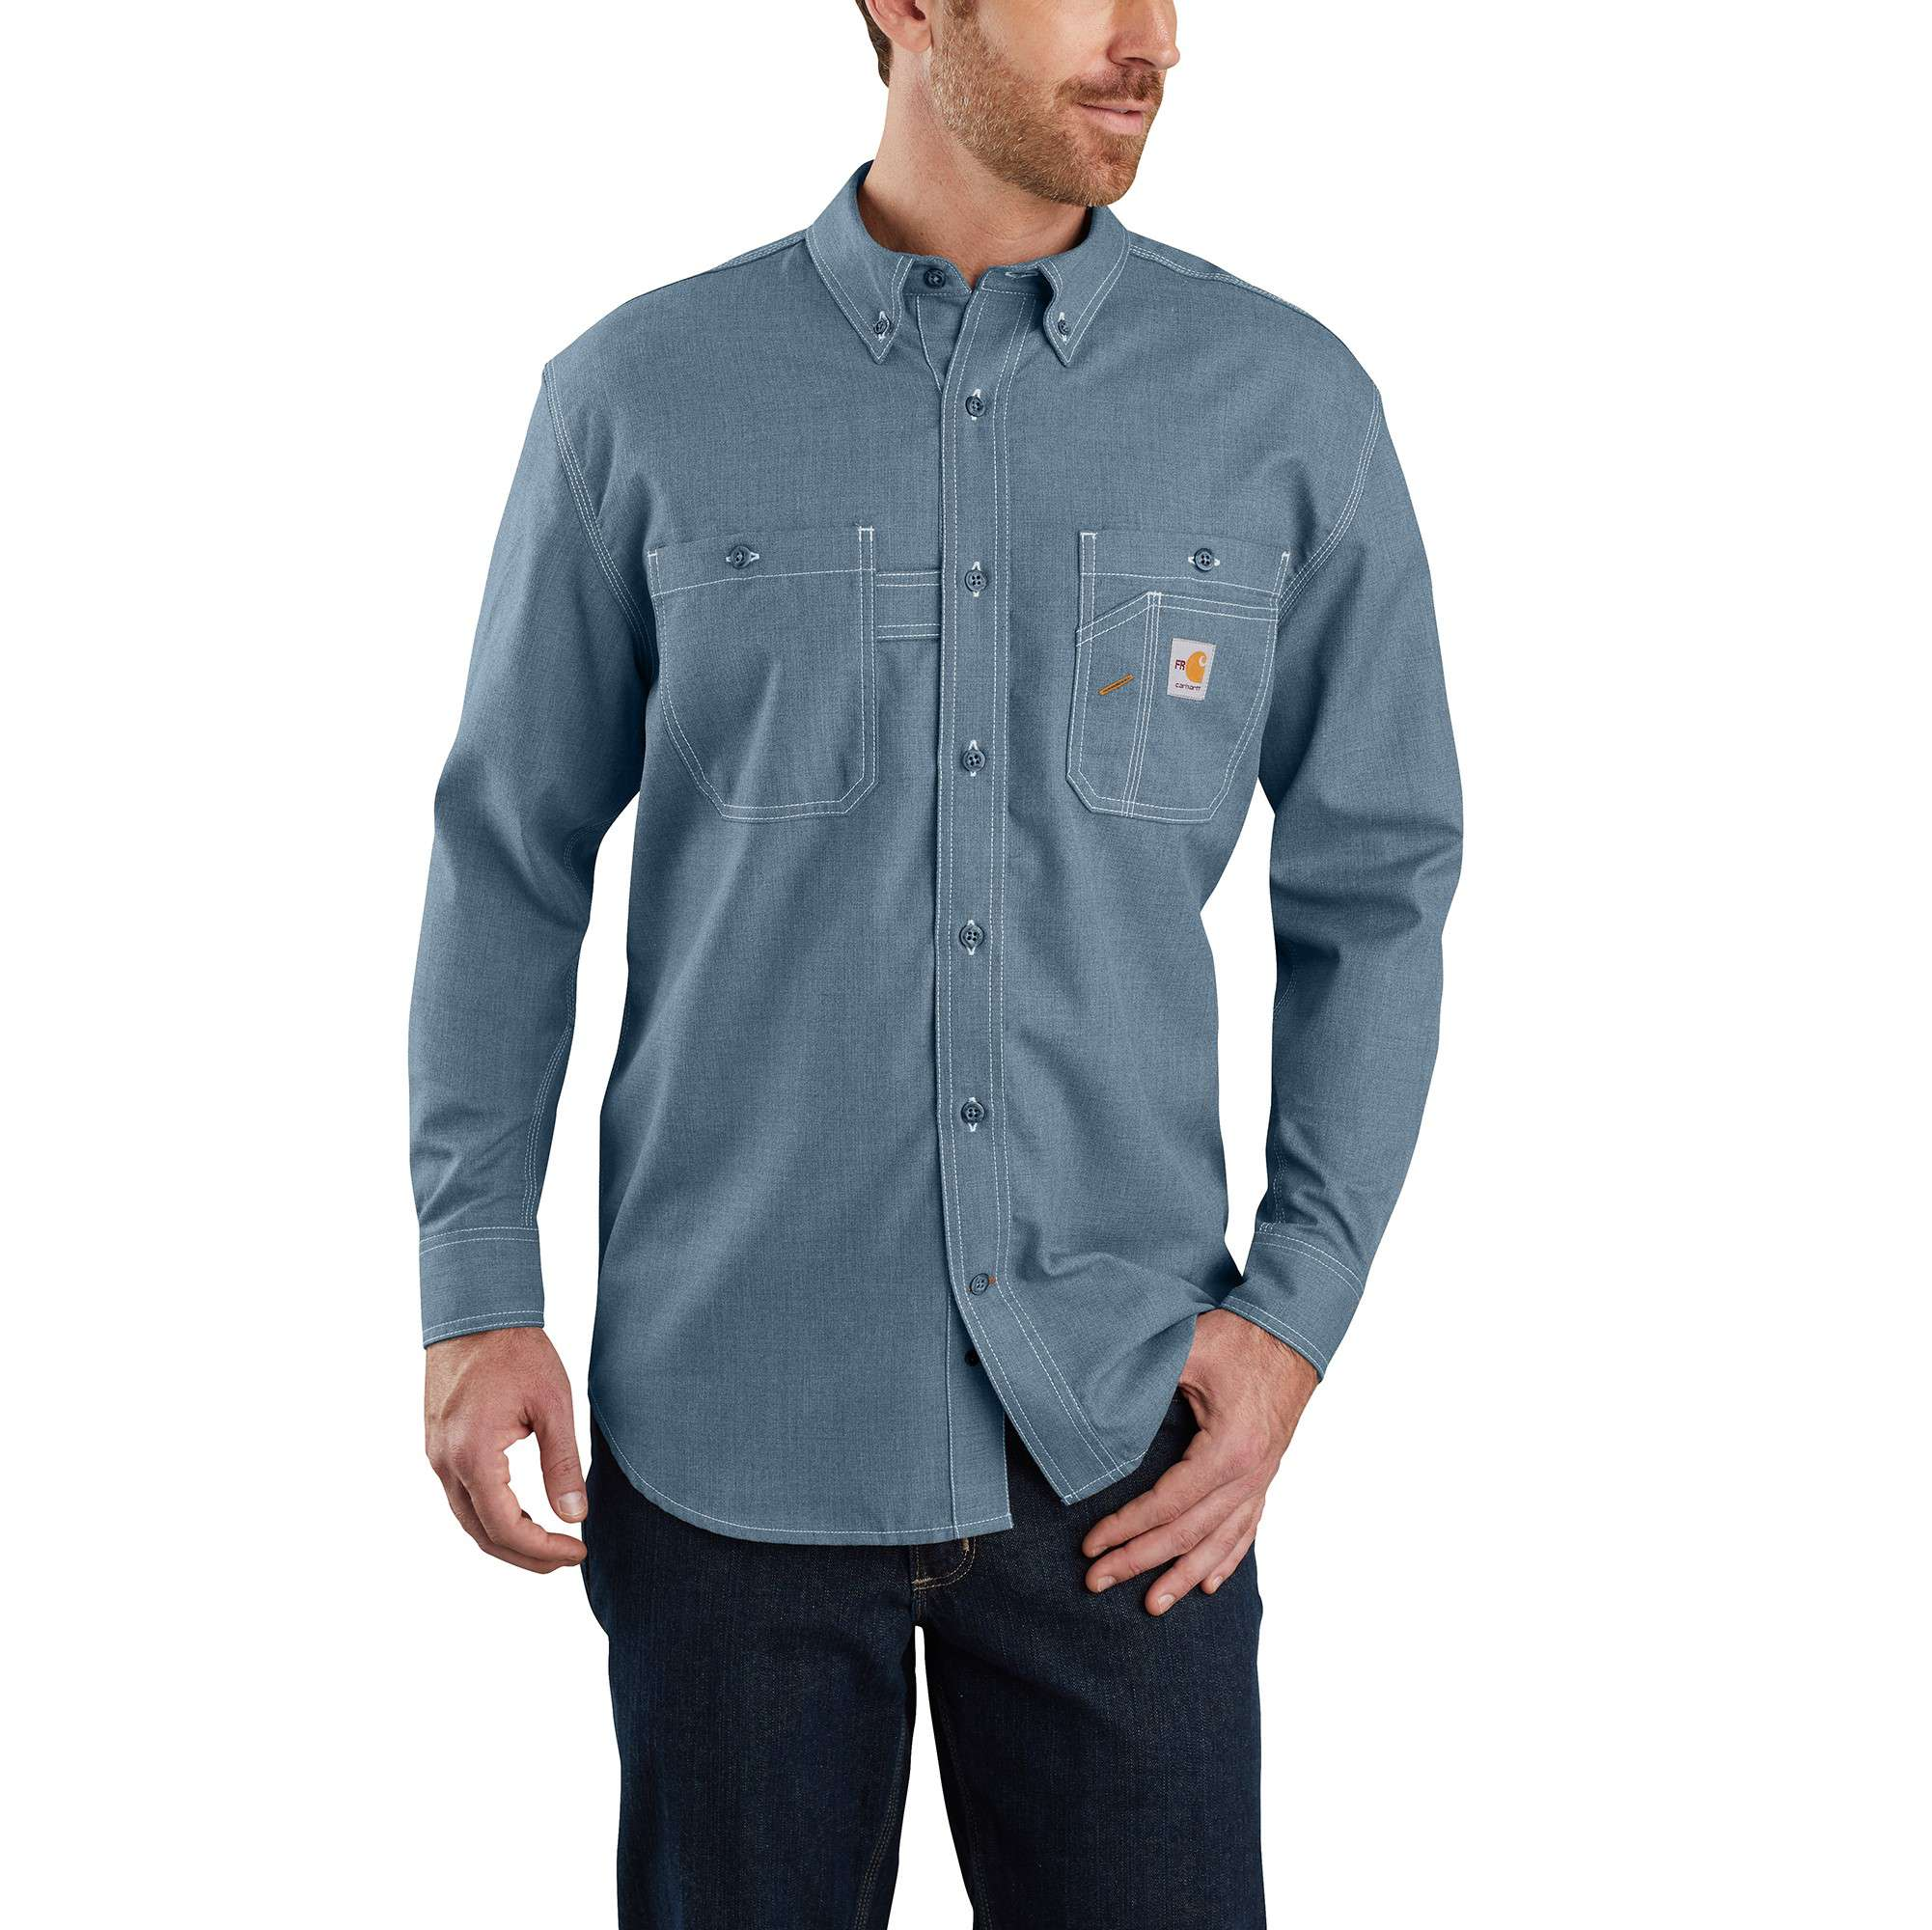 Carhartt Flame-Resistant Carhartt Force Original Fit Lightweight Long-Sleeve Button Front Shirt